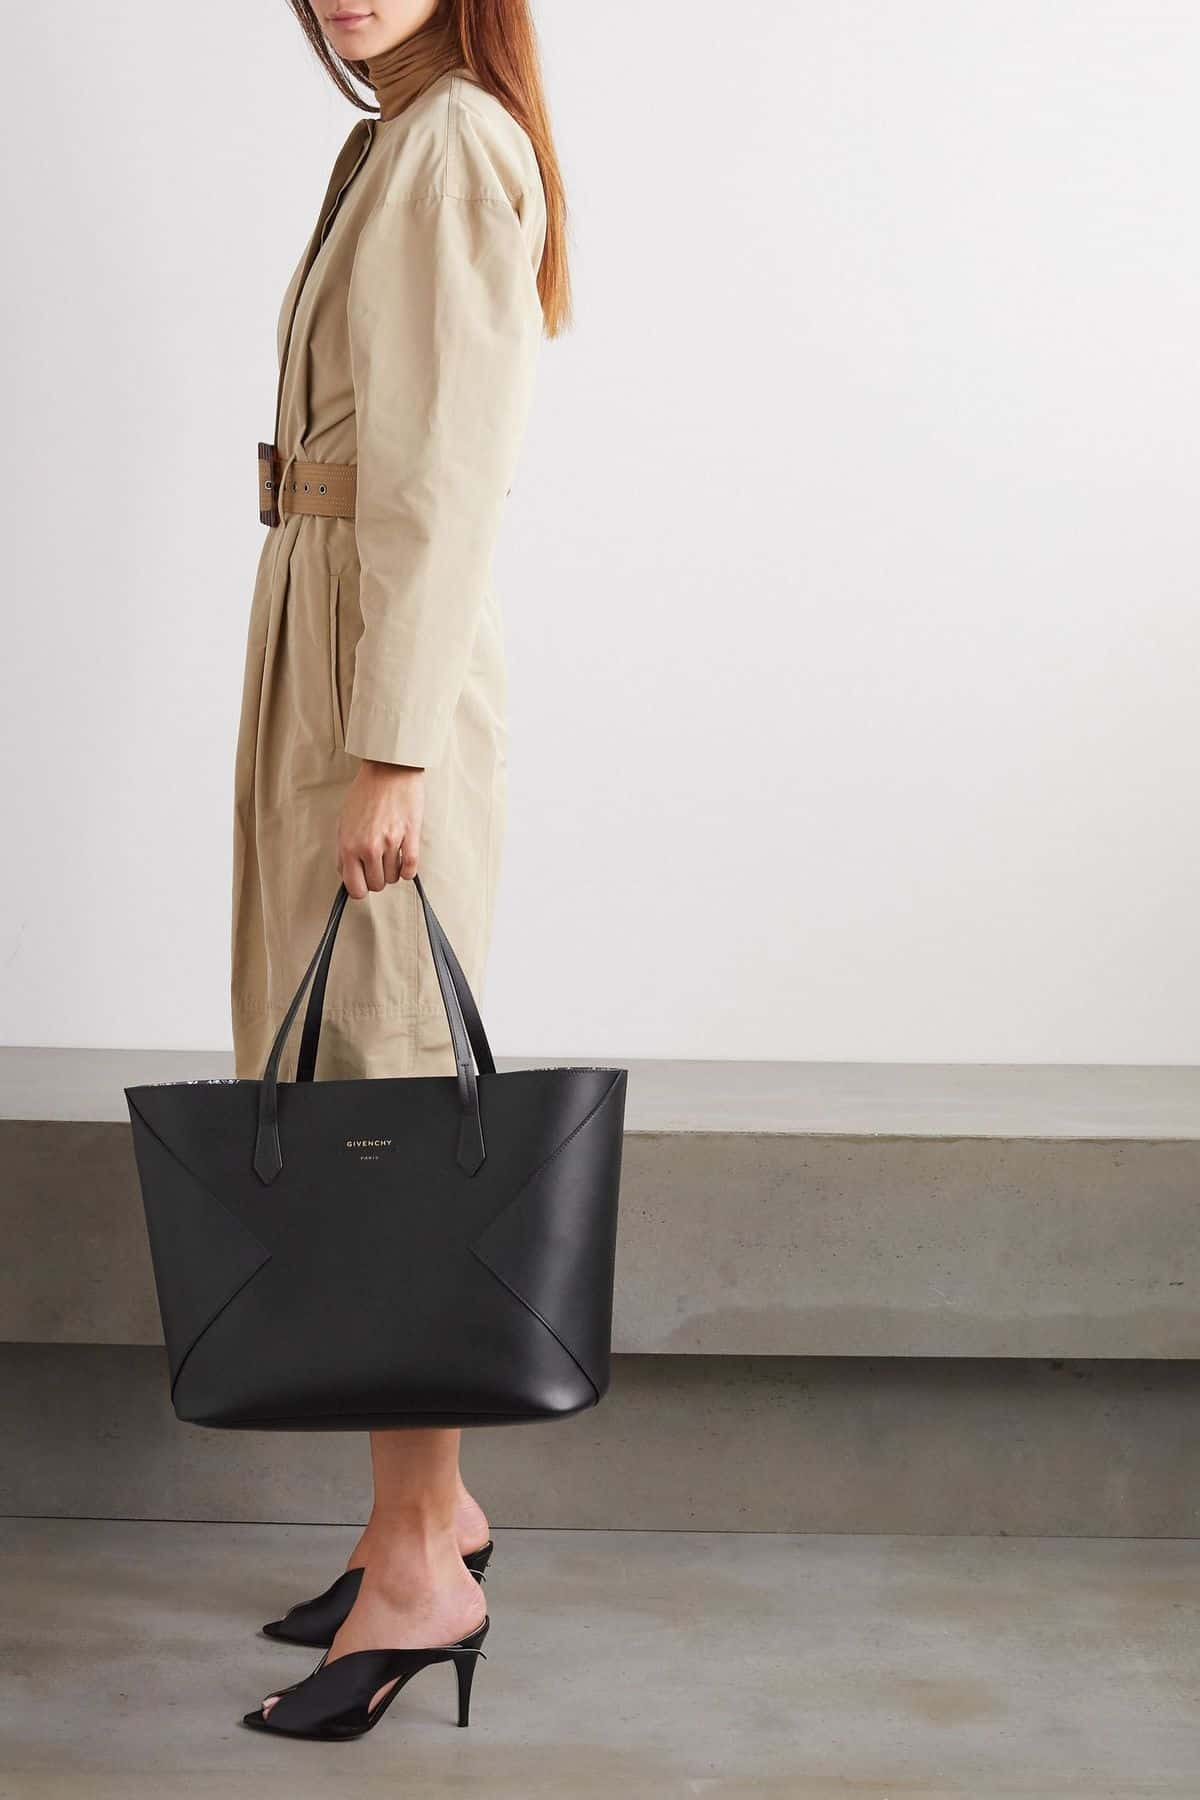 Givenchy Black Wing Shopping Tote